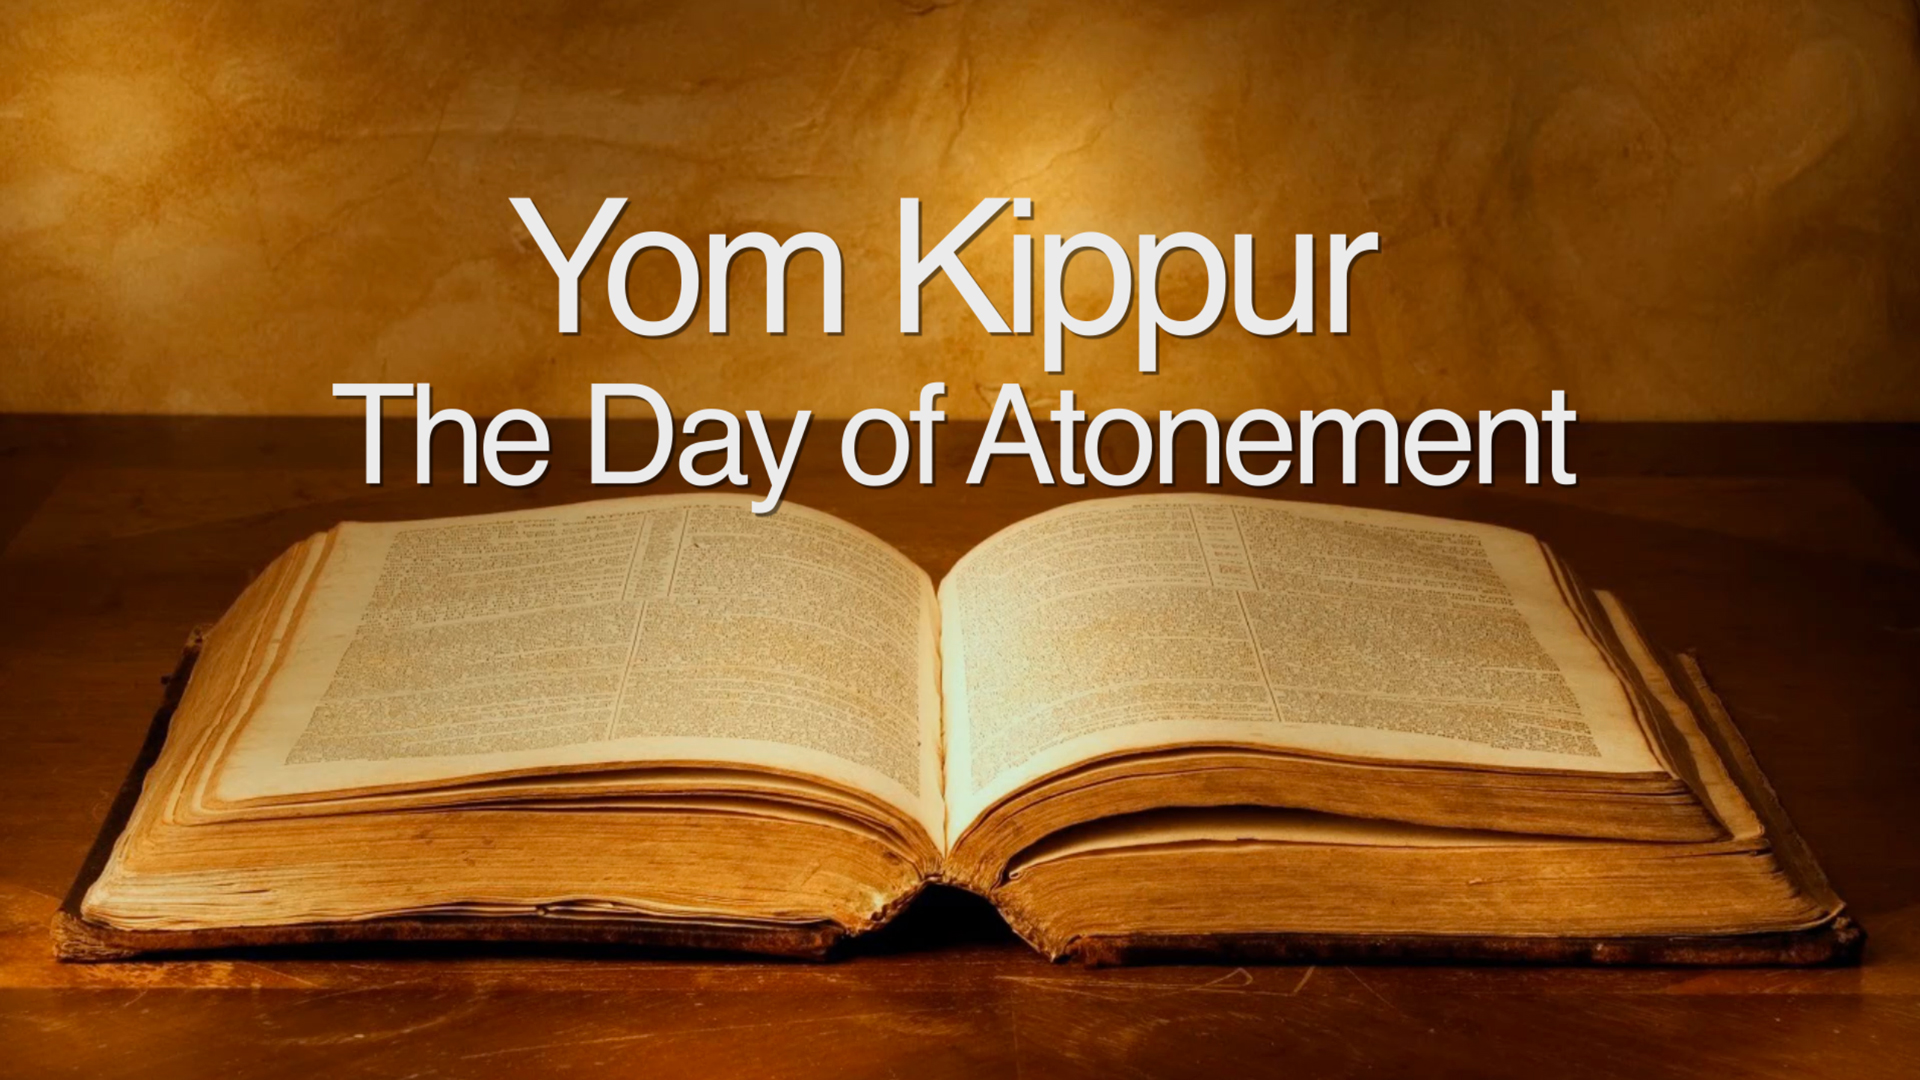 yom kippur - photo #4